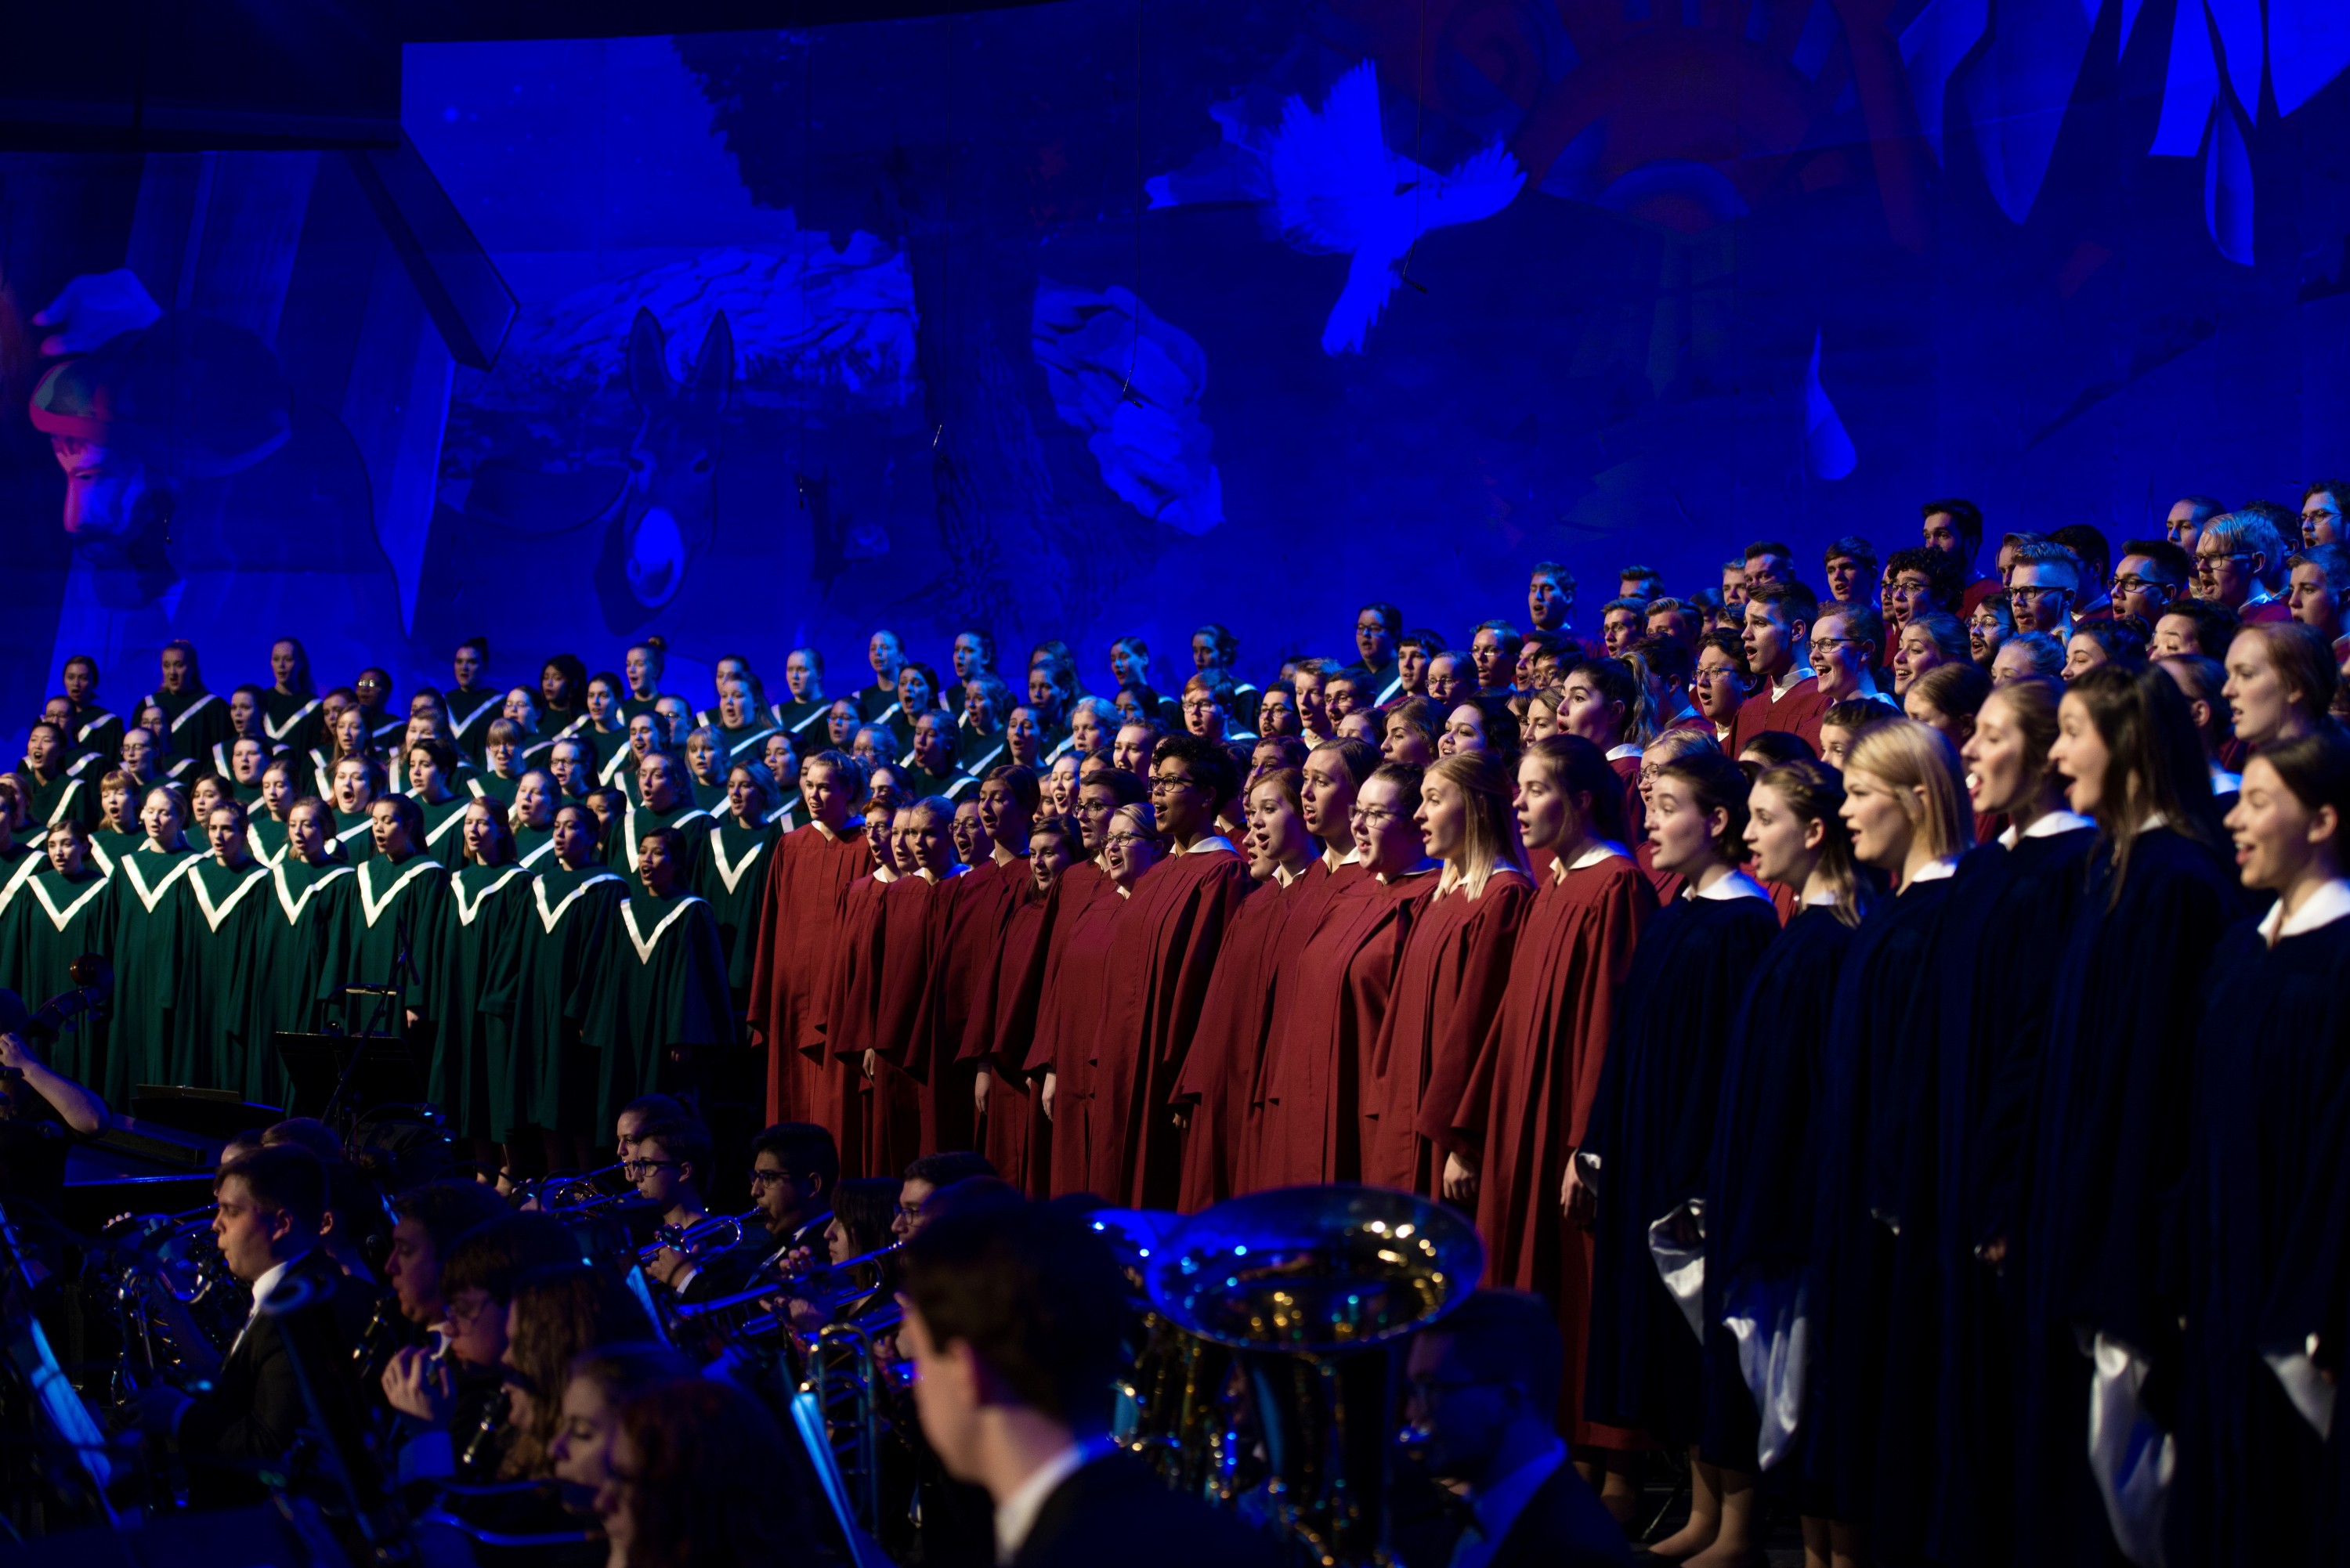 Behind the Scenes of the Concordia Christmas Concert | Concordia